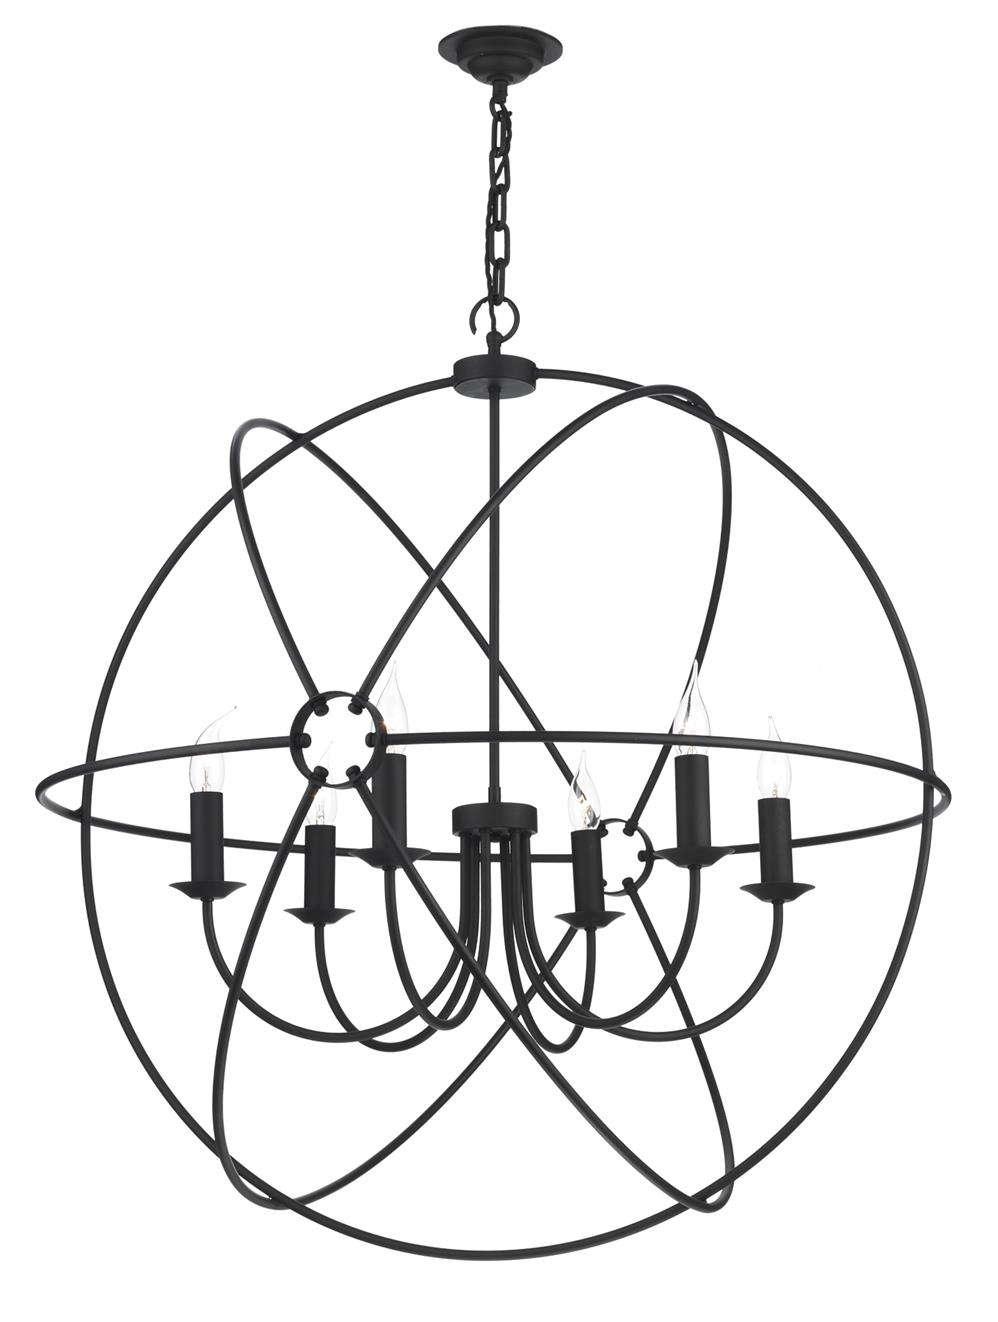 David Hunt Lighting ORB0622 Orb 6 Light Pendant in Black Finish